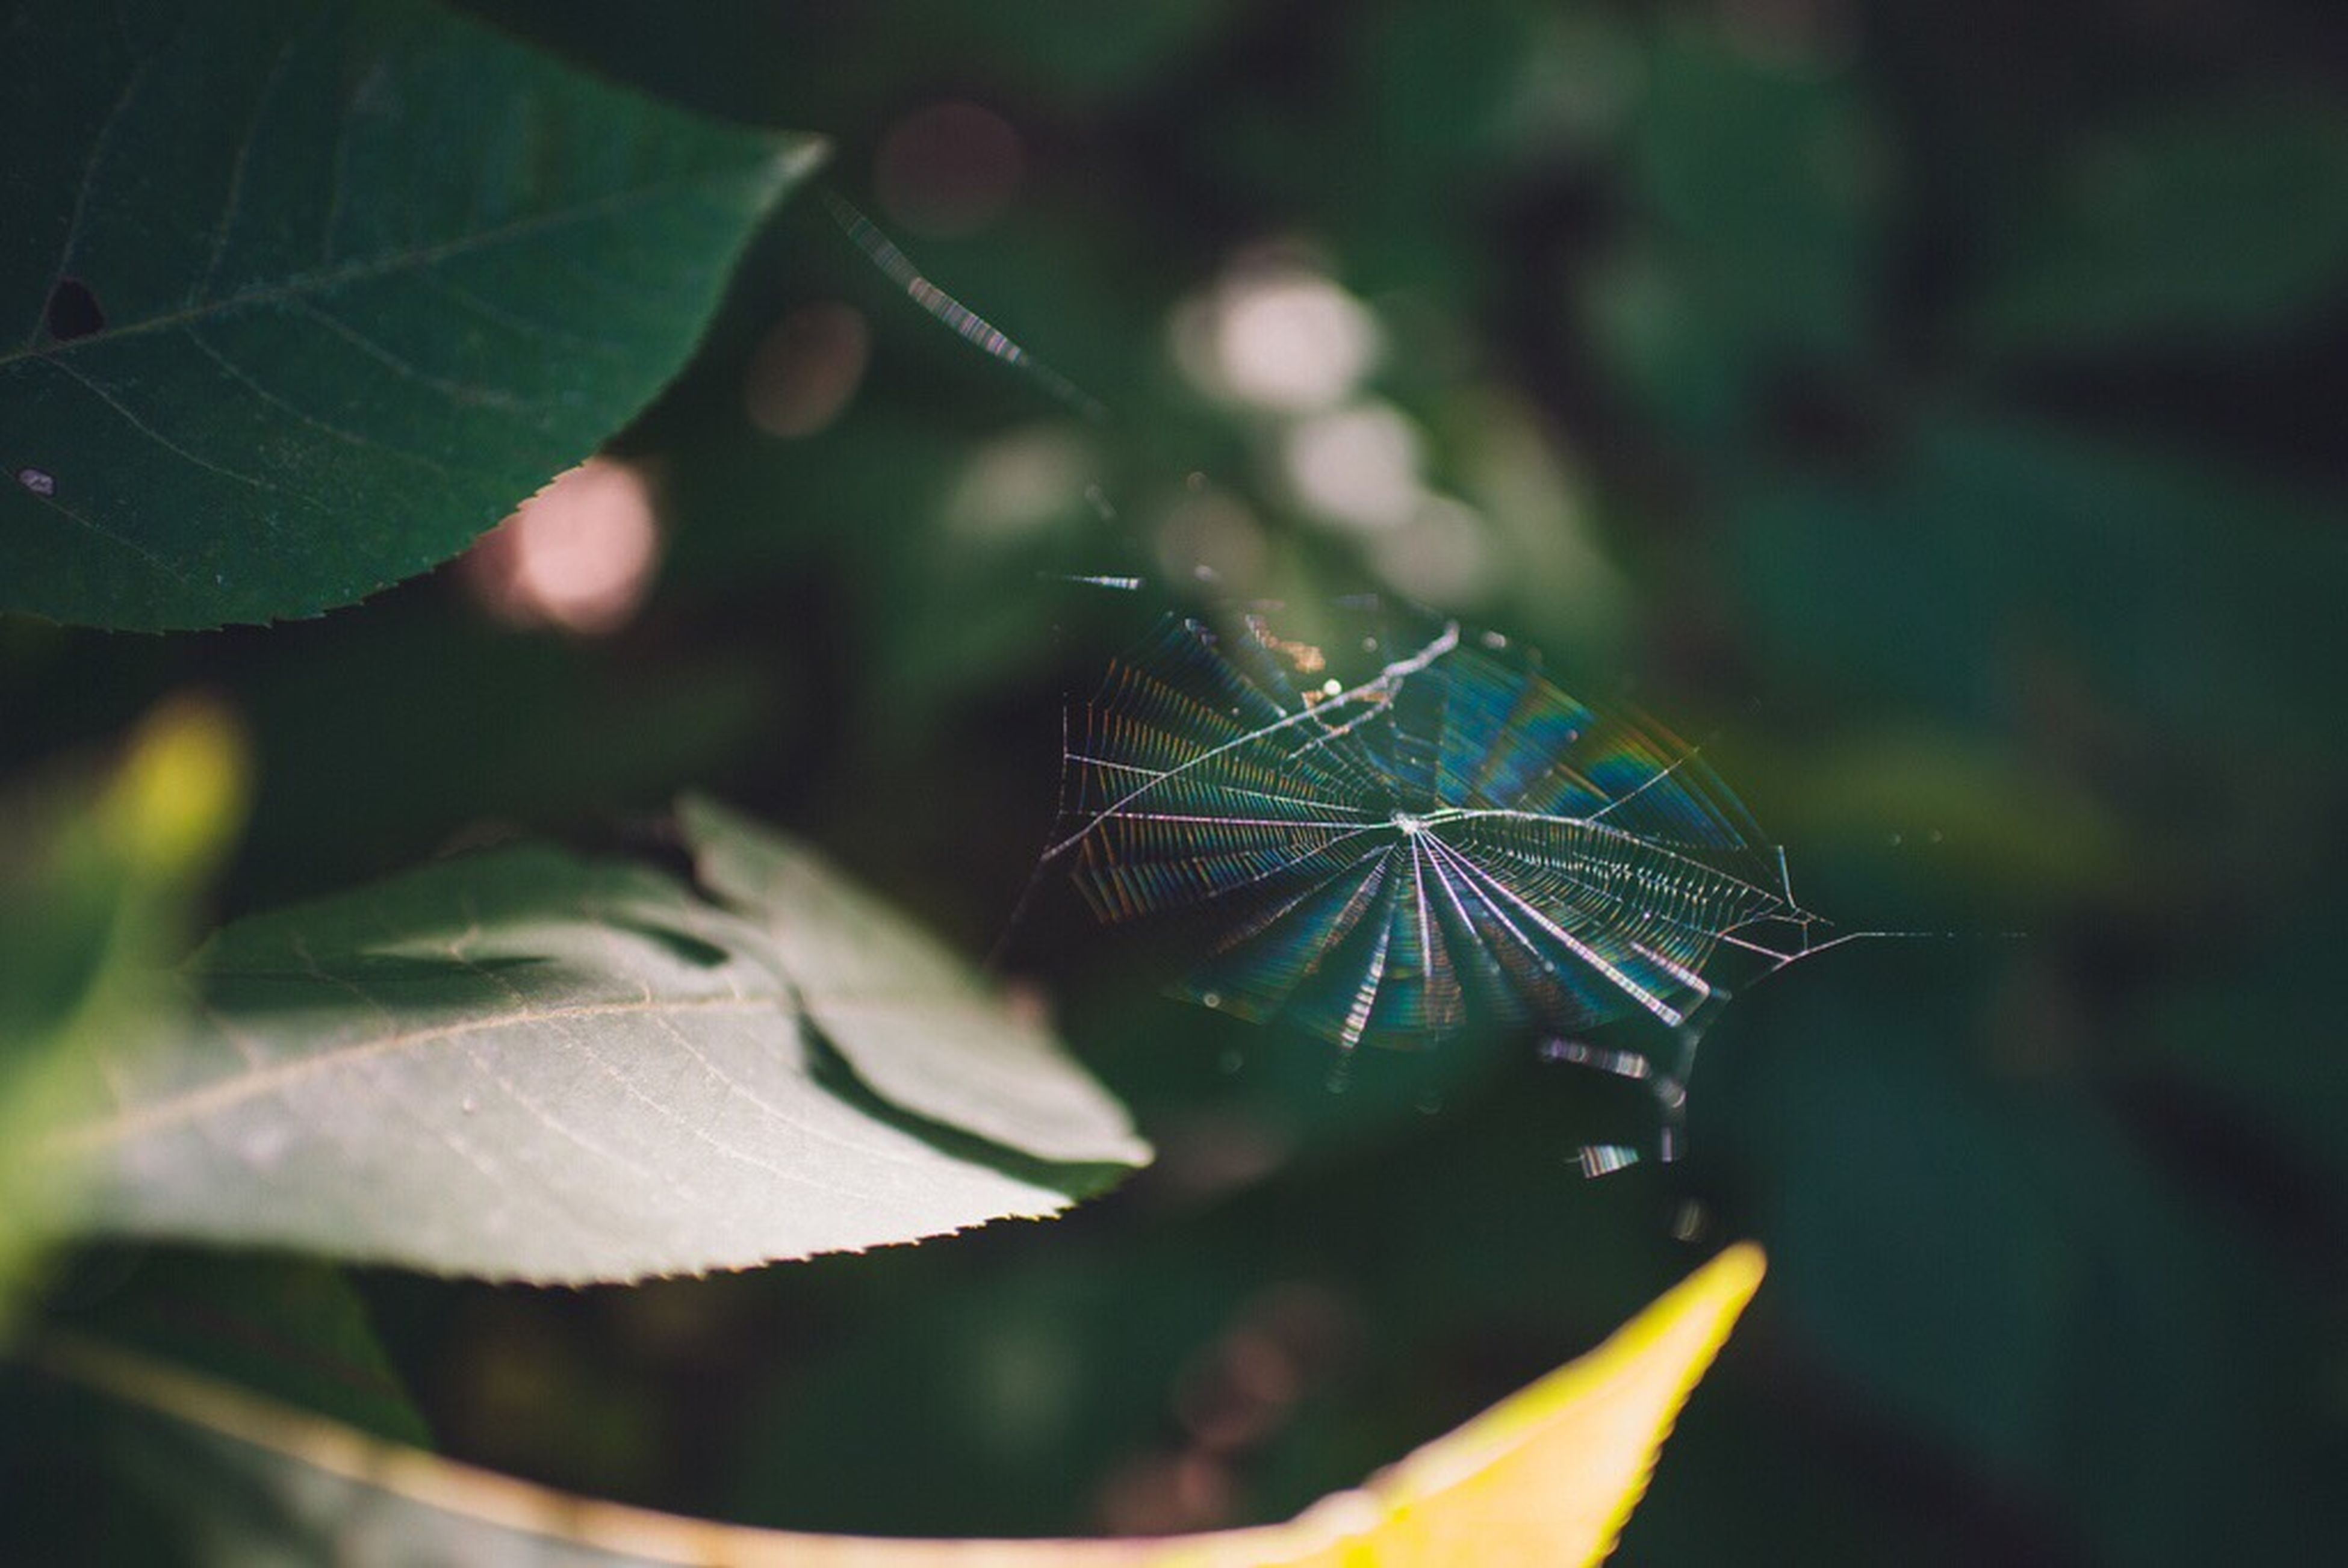 leaf, close-up, growth, nature, selective focus, plant, beauty in nature, fragility, leaf vein, green color, botany, tranquility, focus on foreground, freshness, day, leaves, new life, outdoors, green, scenics, softness, springtime, garden, growing